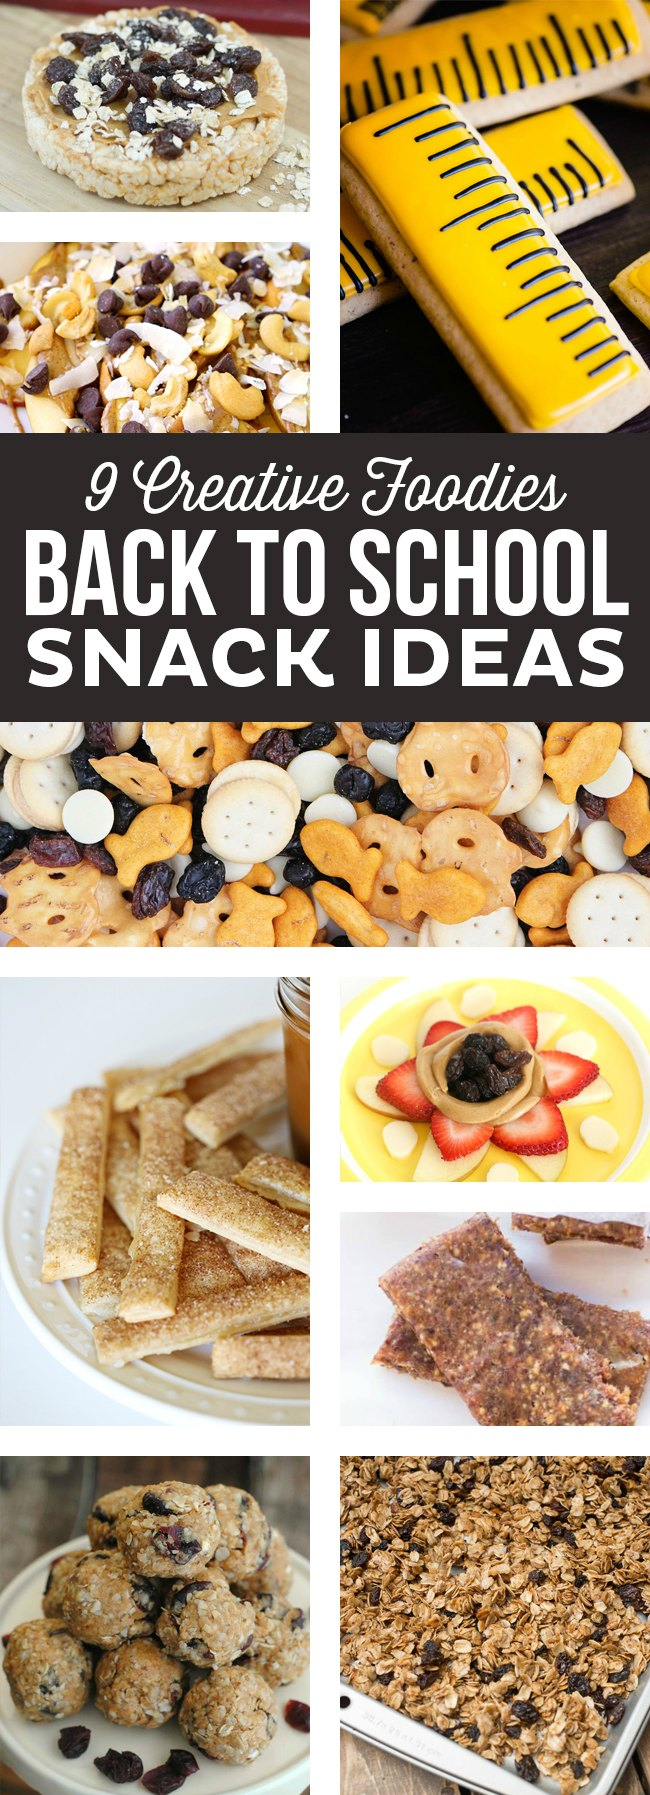 Creative-Foodies-Back-toSchool